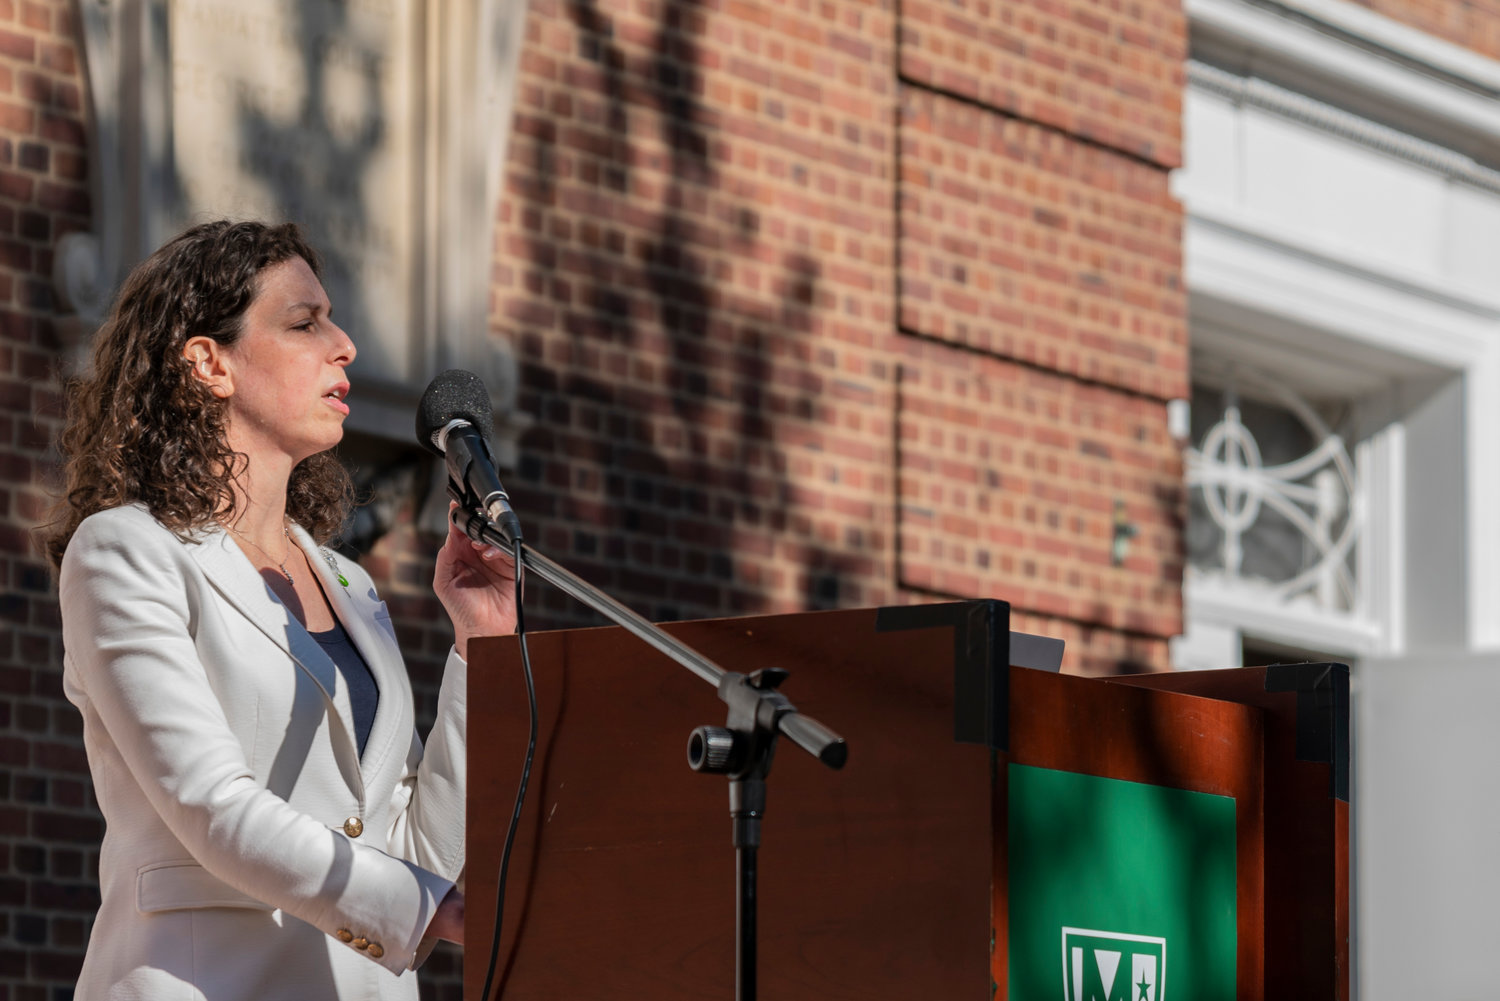 Before she was a city council candidate, Jessica Haller was a climate activist. In fact, she still is. Haller was one of several speakers invited to Manhattan College's 'shoe strike' Sept. 22 to speak about climate change and its impact on the world.